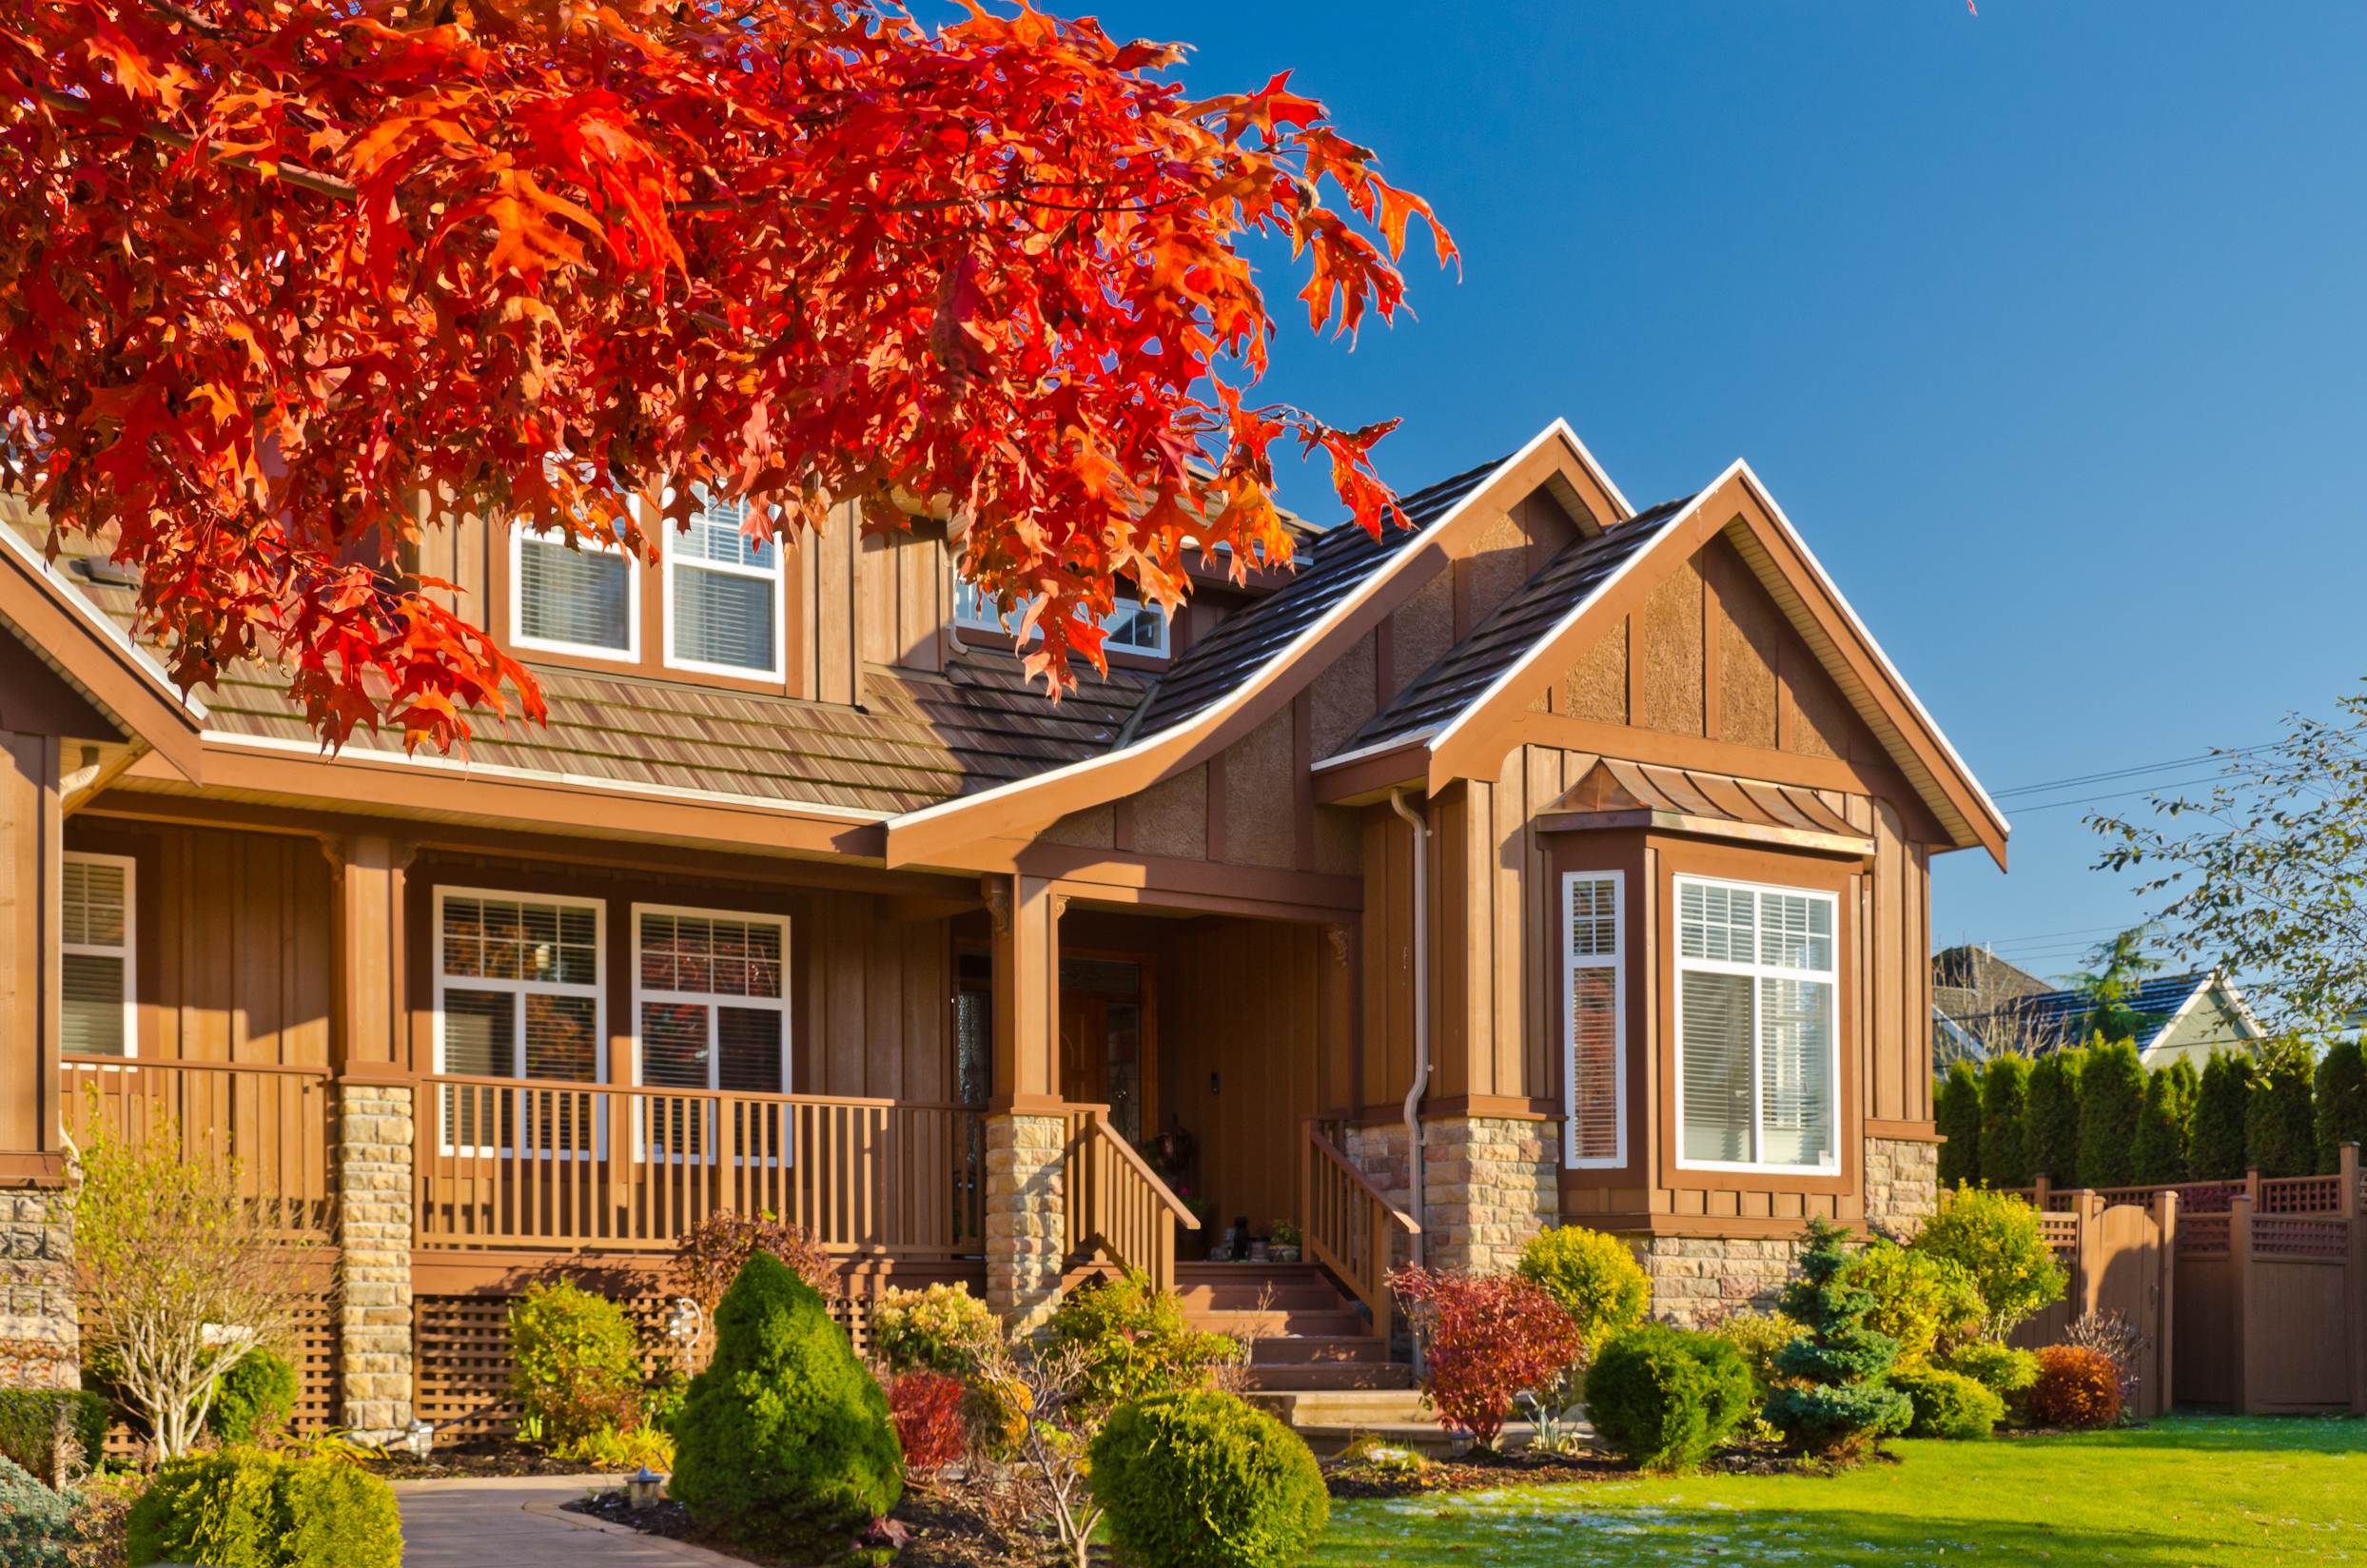 5 Reasons Why You Should Buy an Old House & 5 Reasons Why You Should Buy an Old House - Ana Teresa Rodriguez